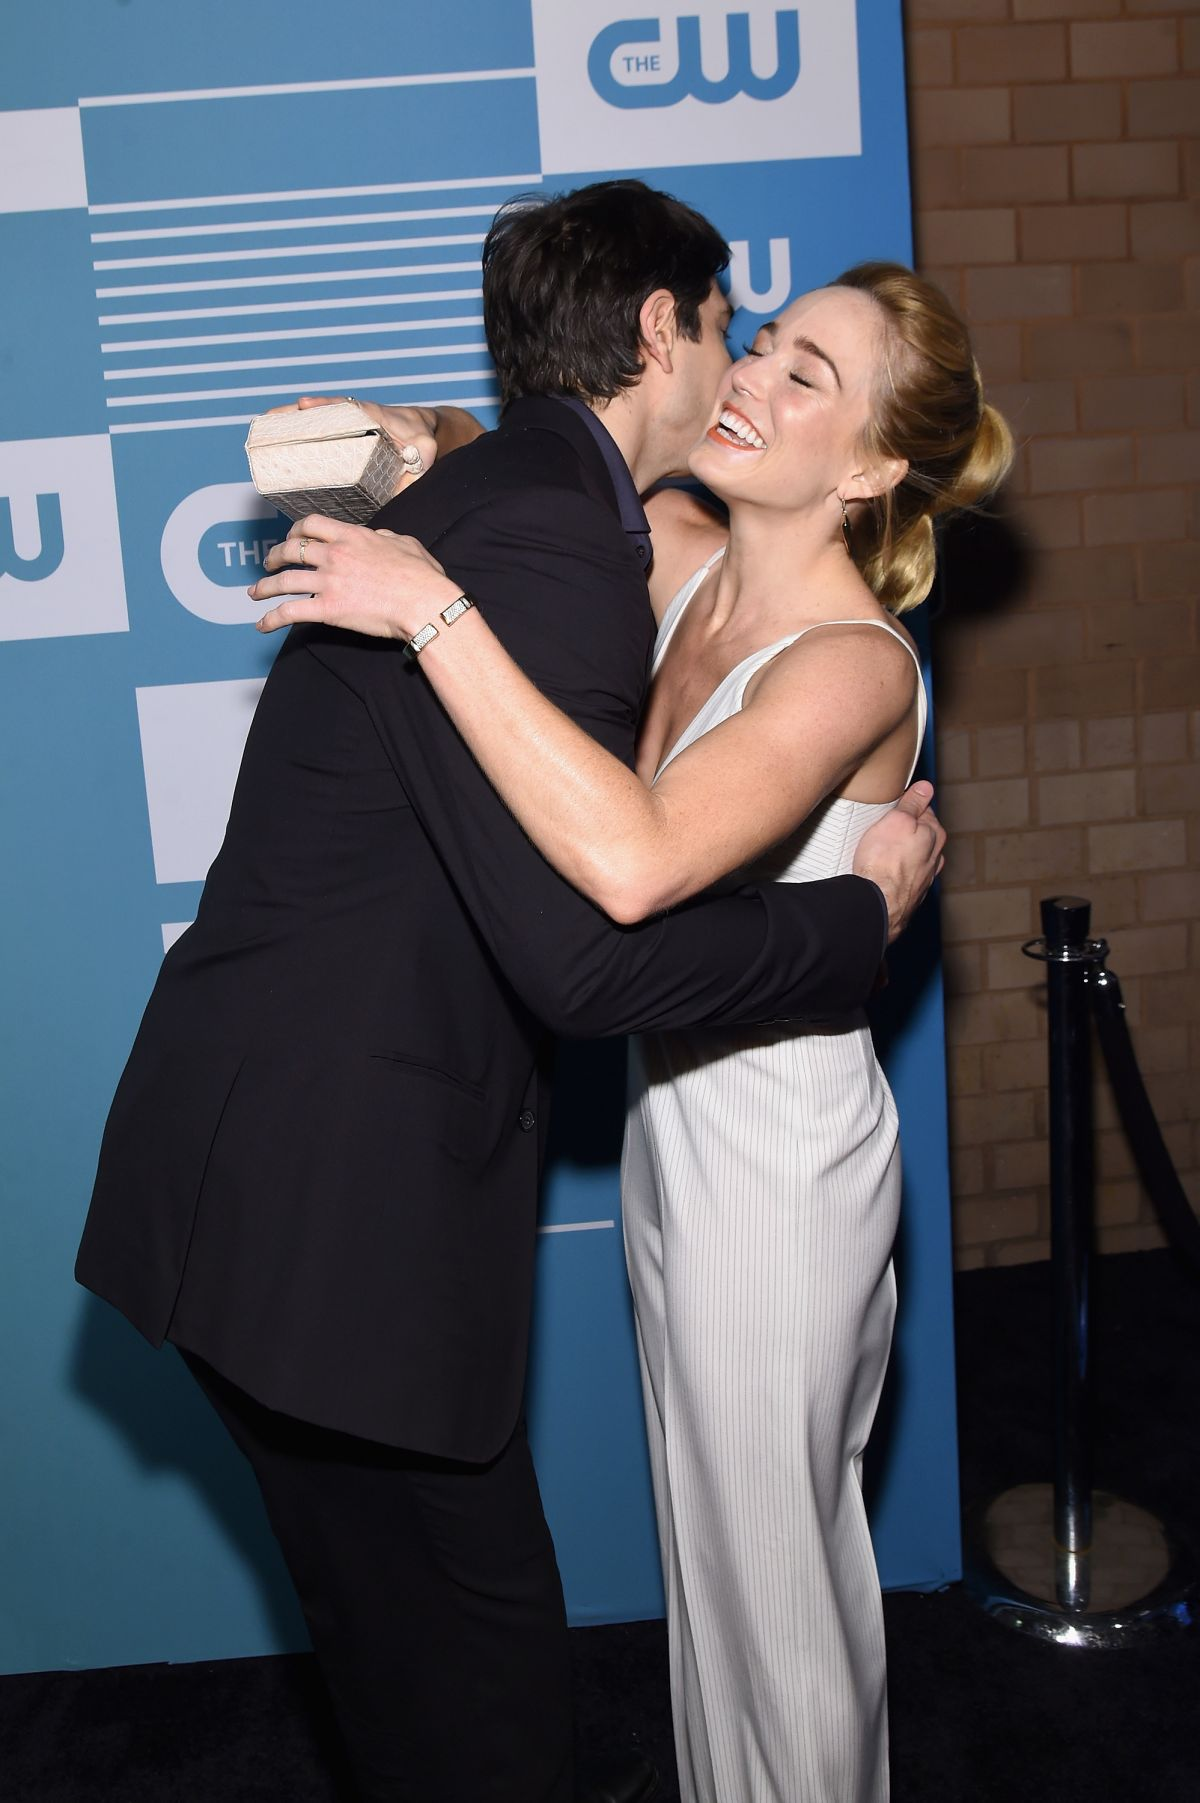 Actress Actress Caity Lotz attends The CW Networks New